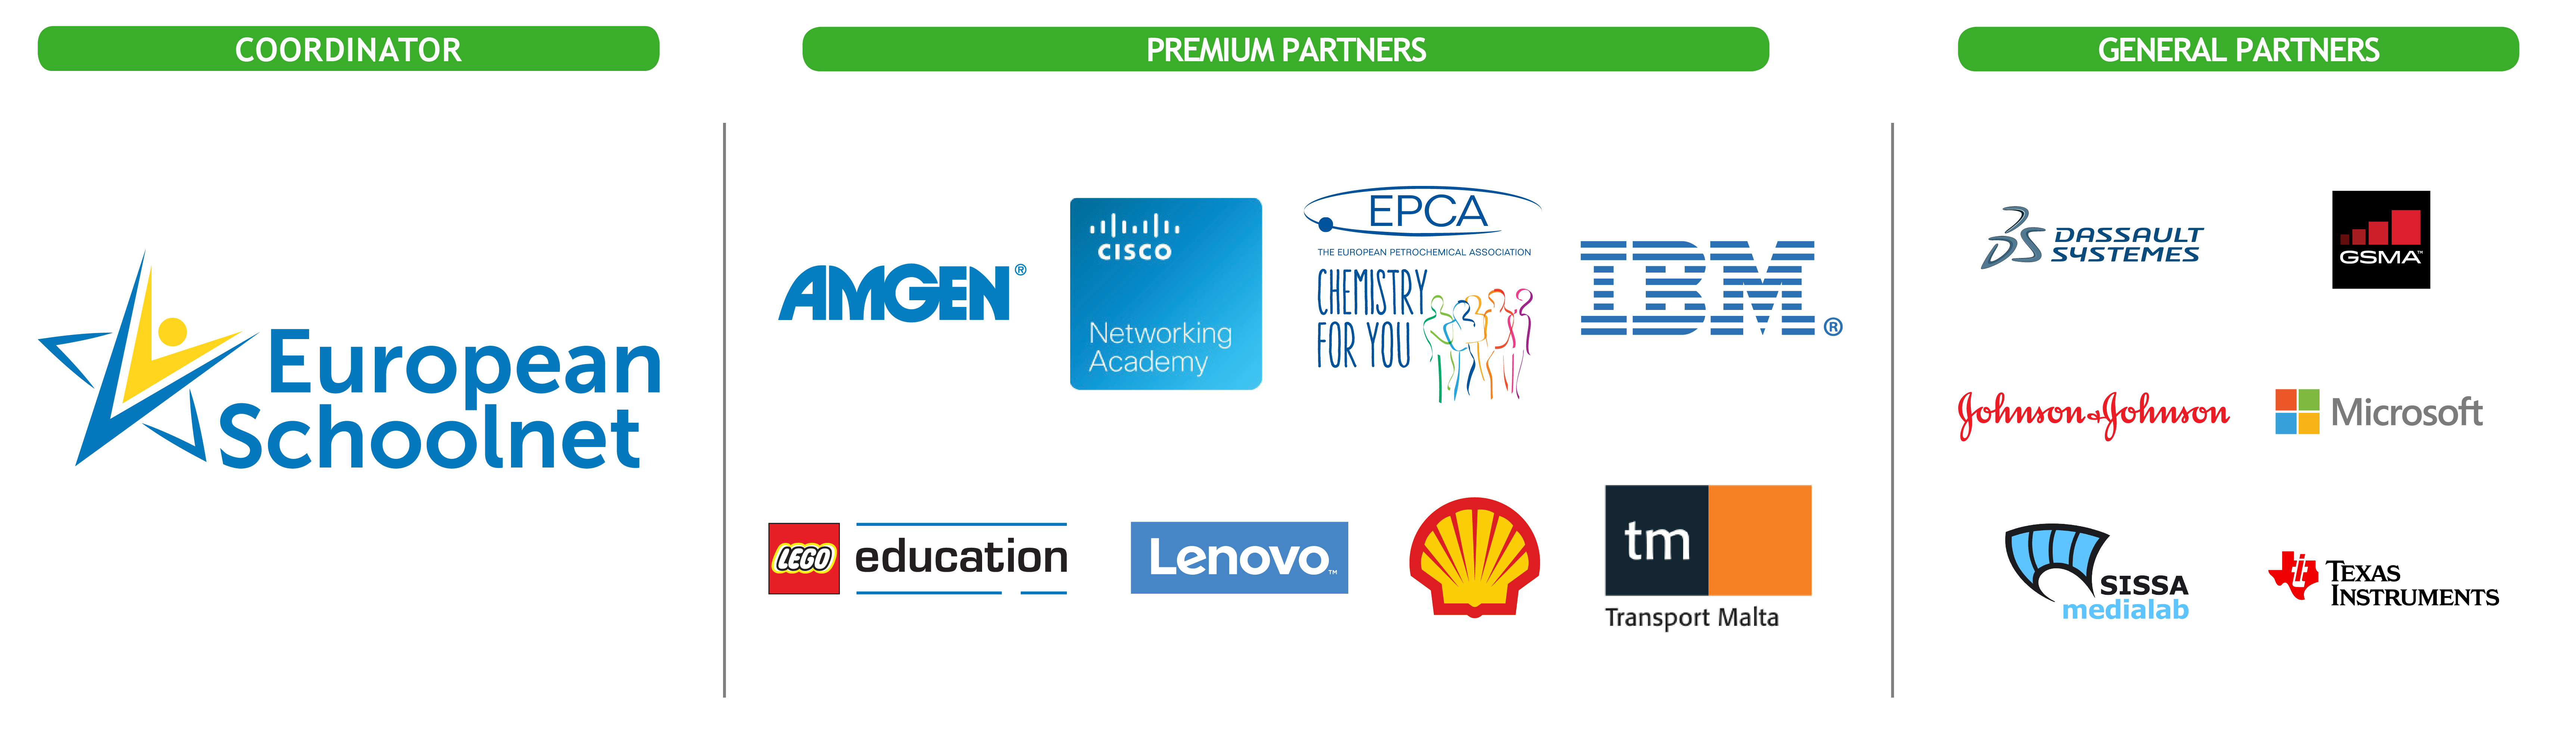 STEM Alliance partners